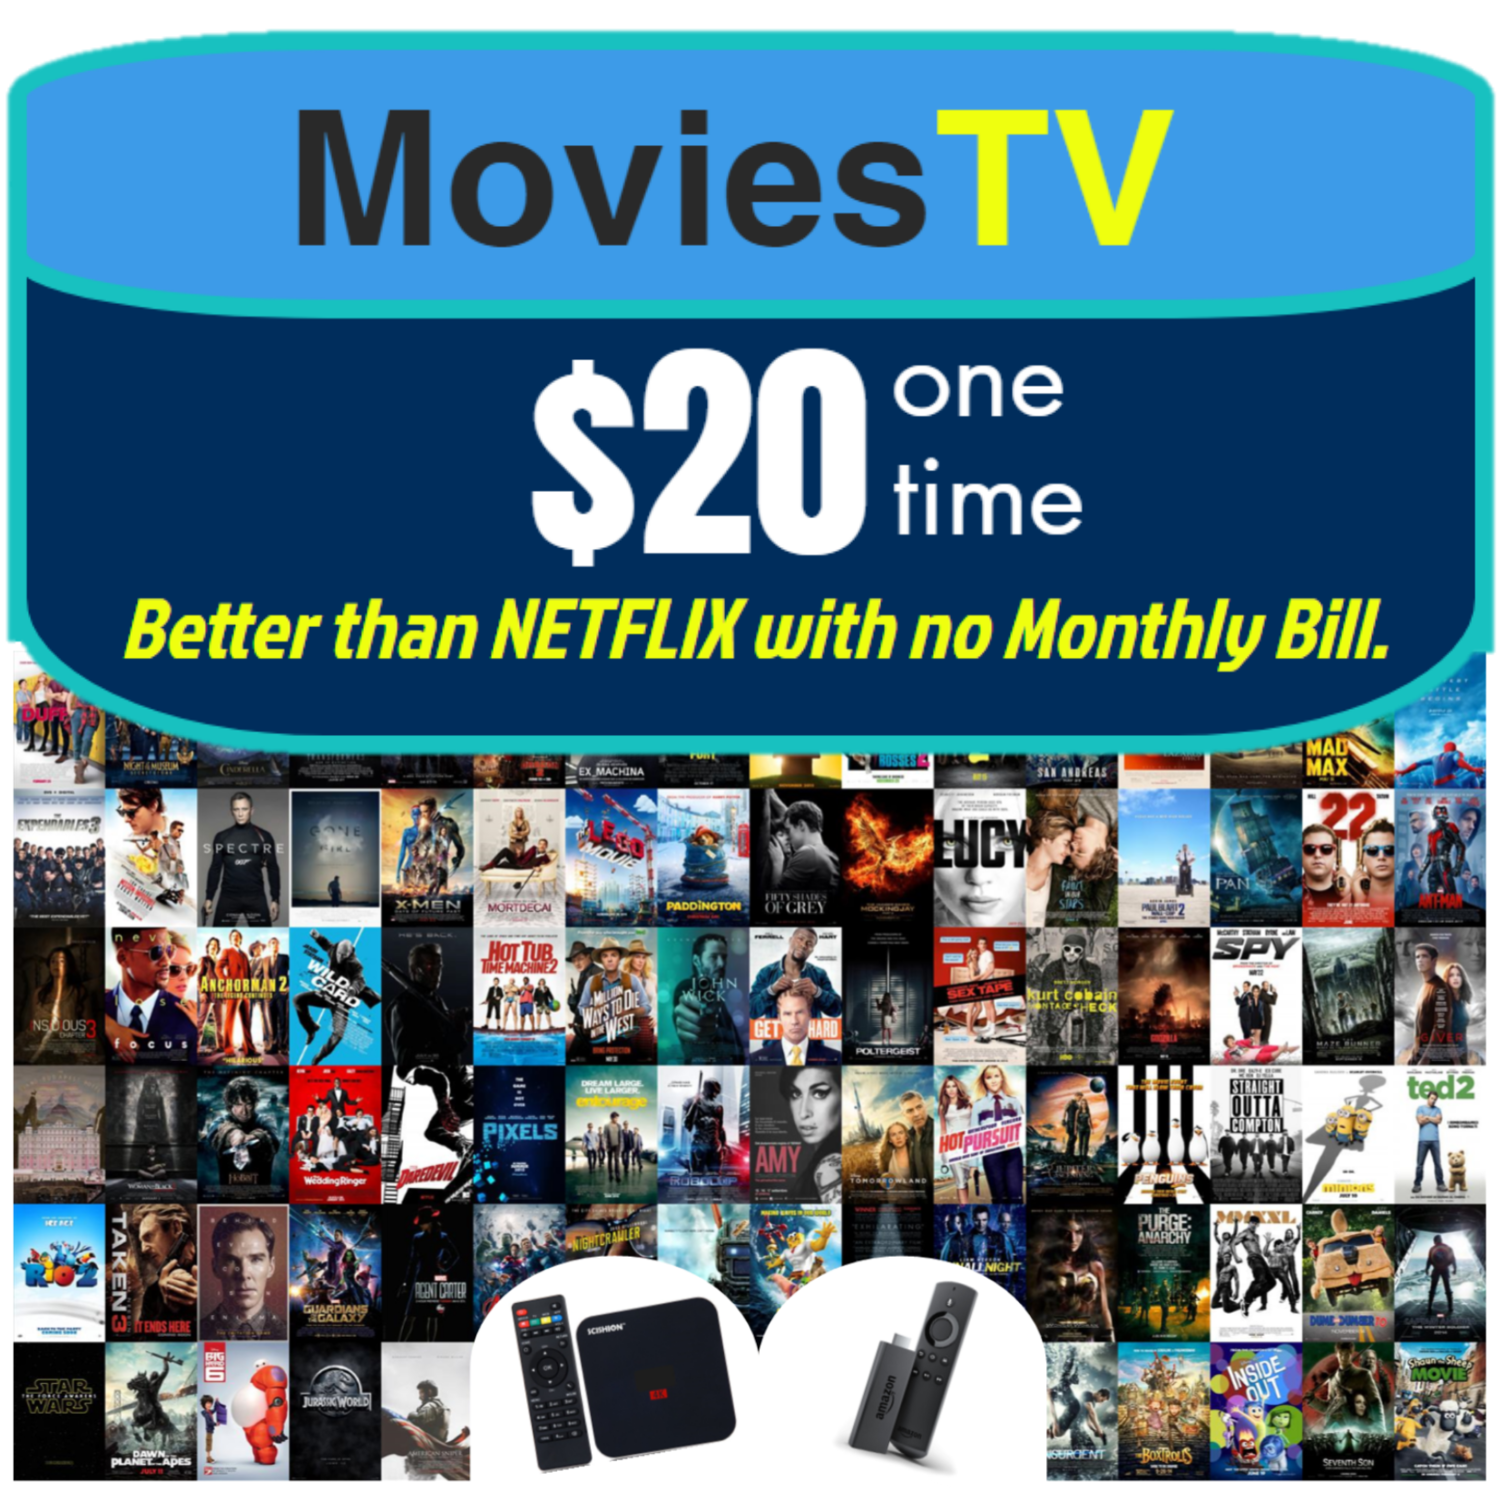 MoviesTV Package - FOR FIRE STICKS & ANDROID BOXES. (INCLUDED WITH ANDROID BOX PURCHASE) Watch Unlimited Movies and TV Shows. NO MONTHLY BILL. Allows you to Update it!